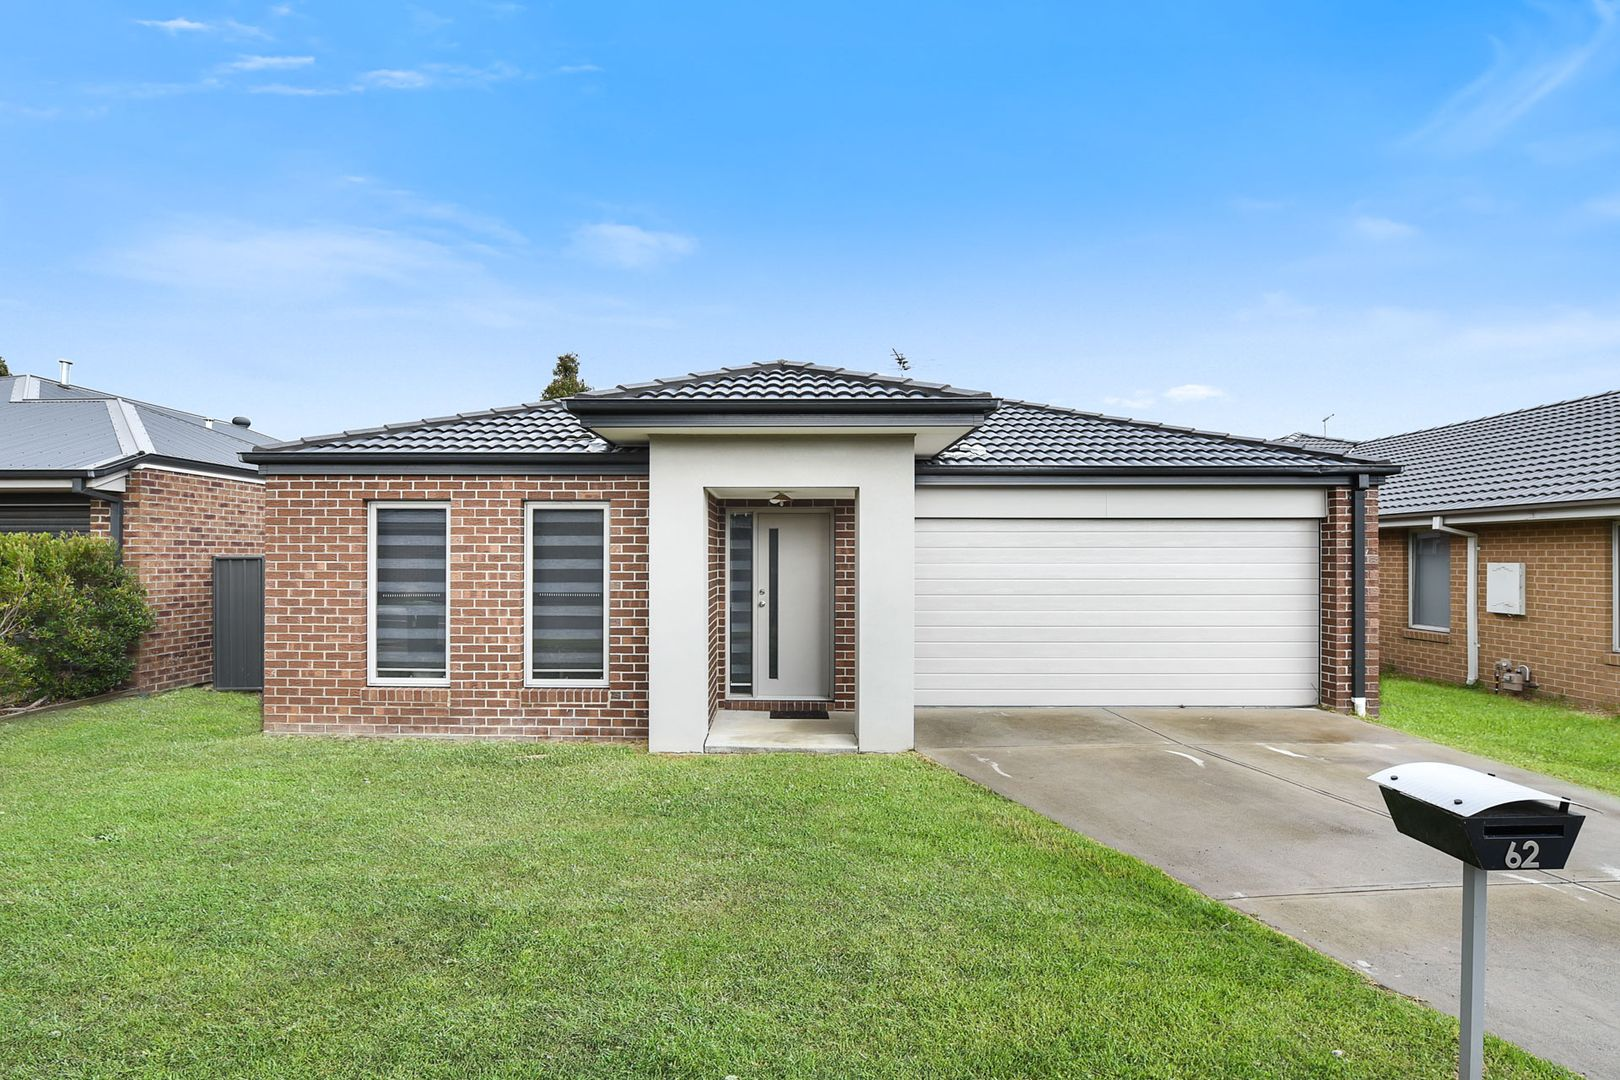 62 Fortuna  Crescent, Cranbourne West VIC 3977, Image 0